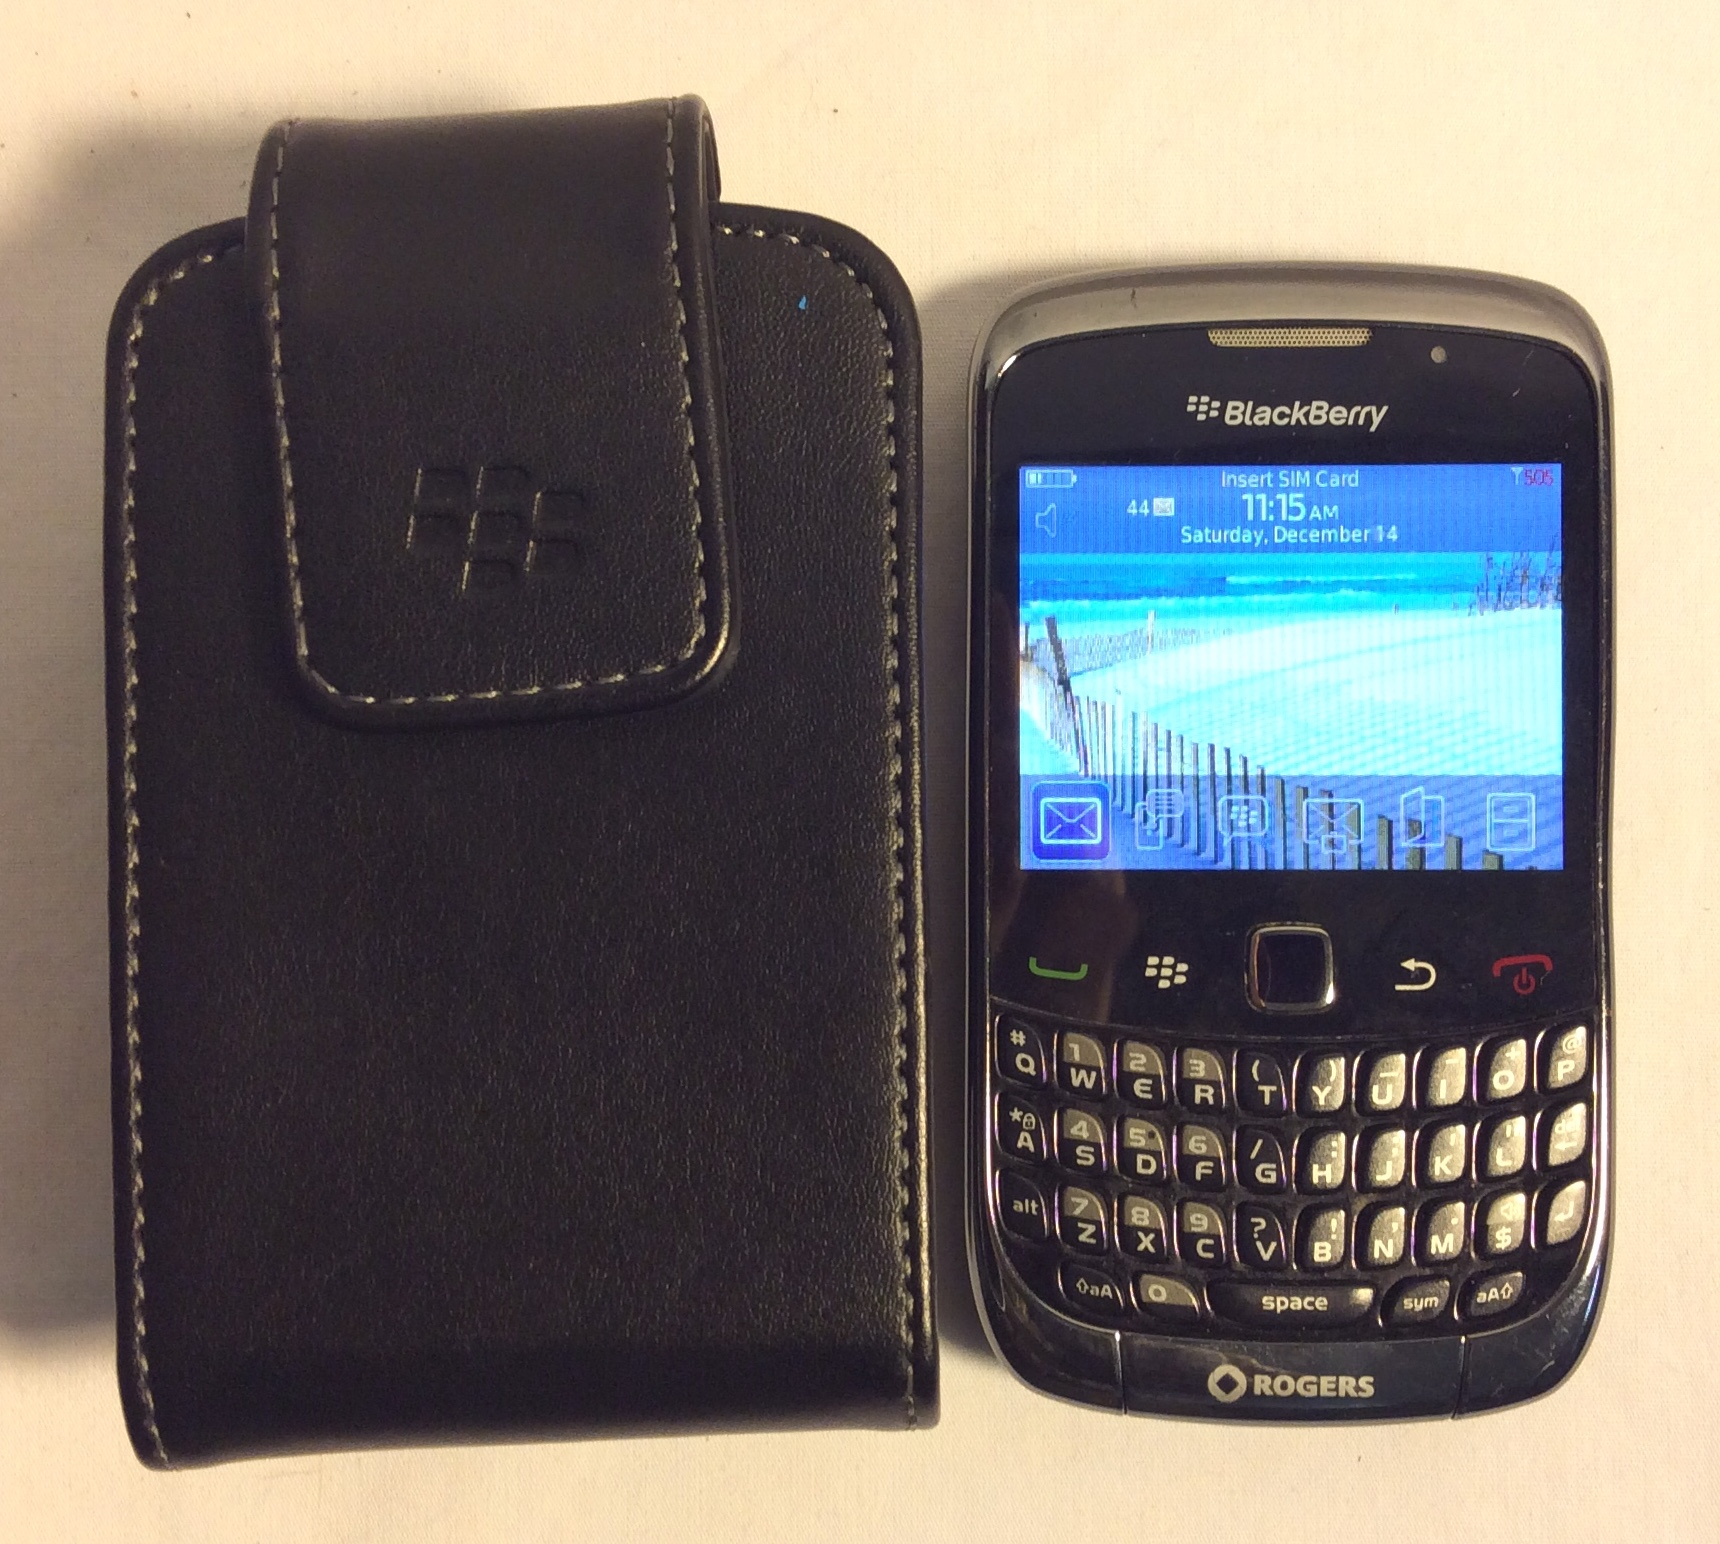 Blackberry Curve 9300 (circa 2010)